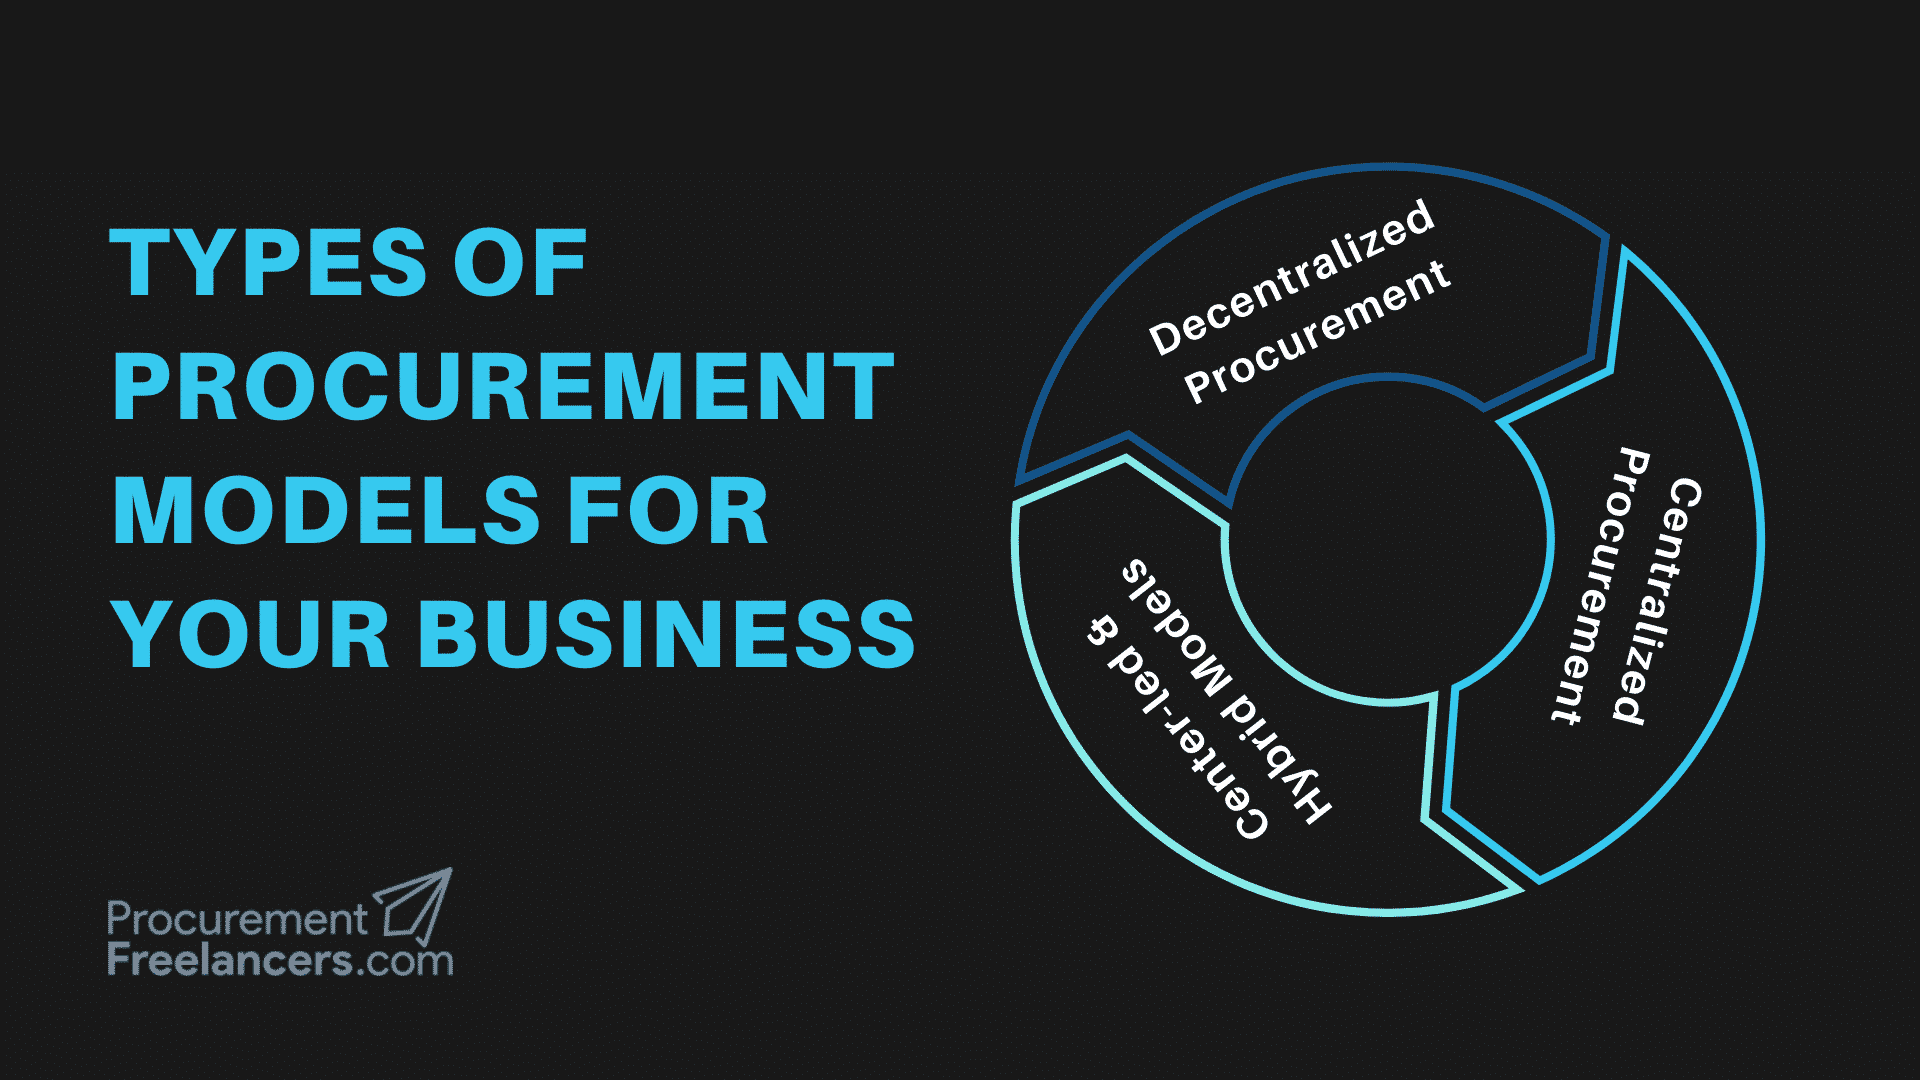 Types of Procurement Models for Your Business